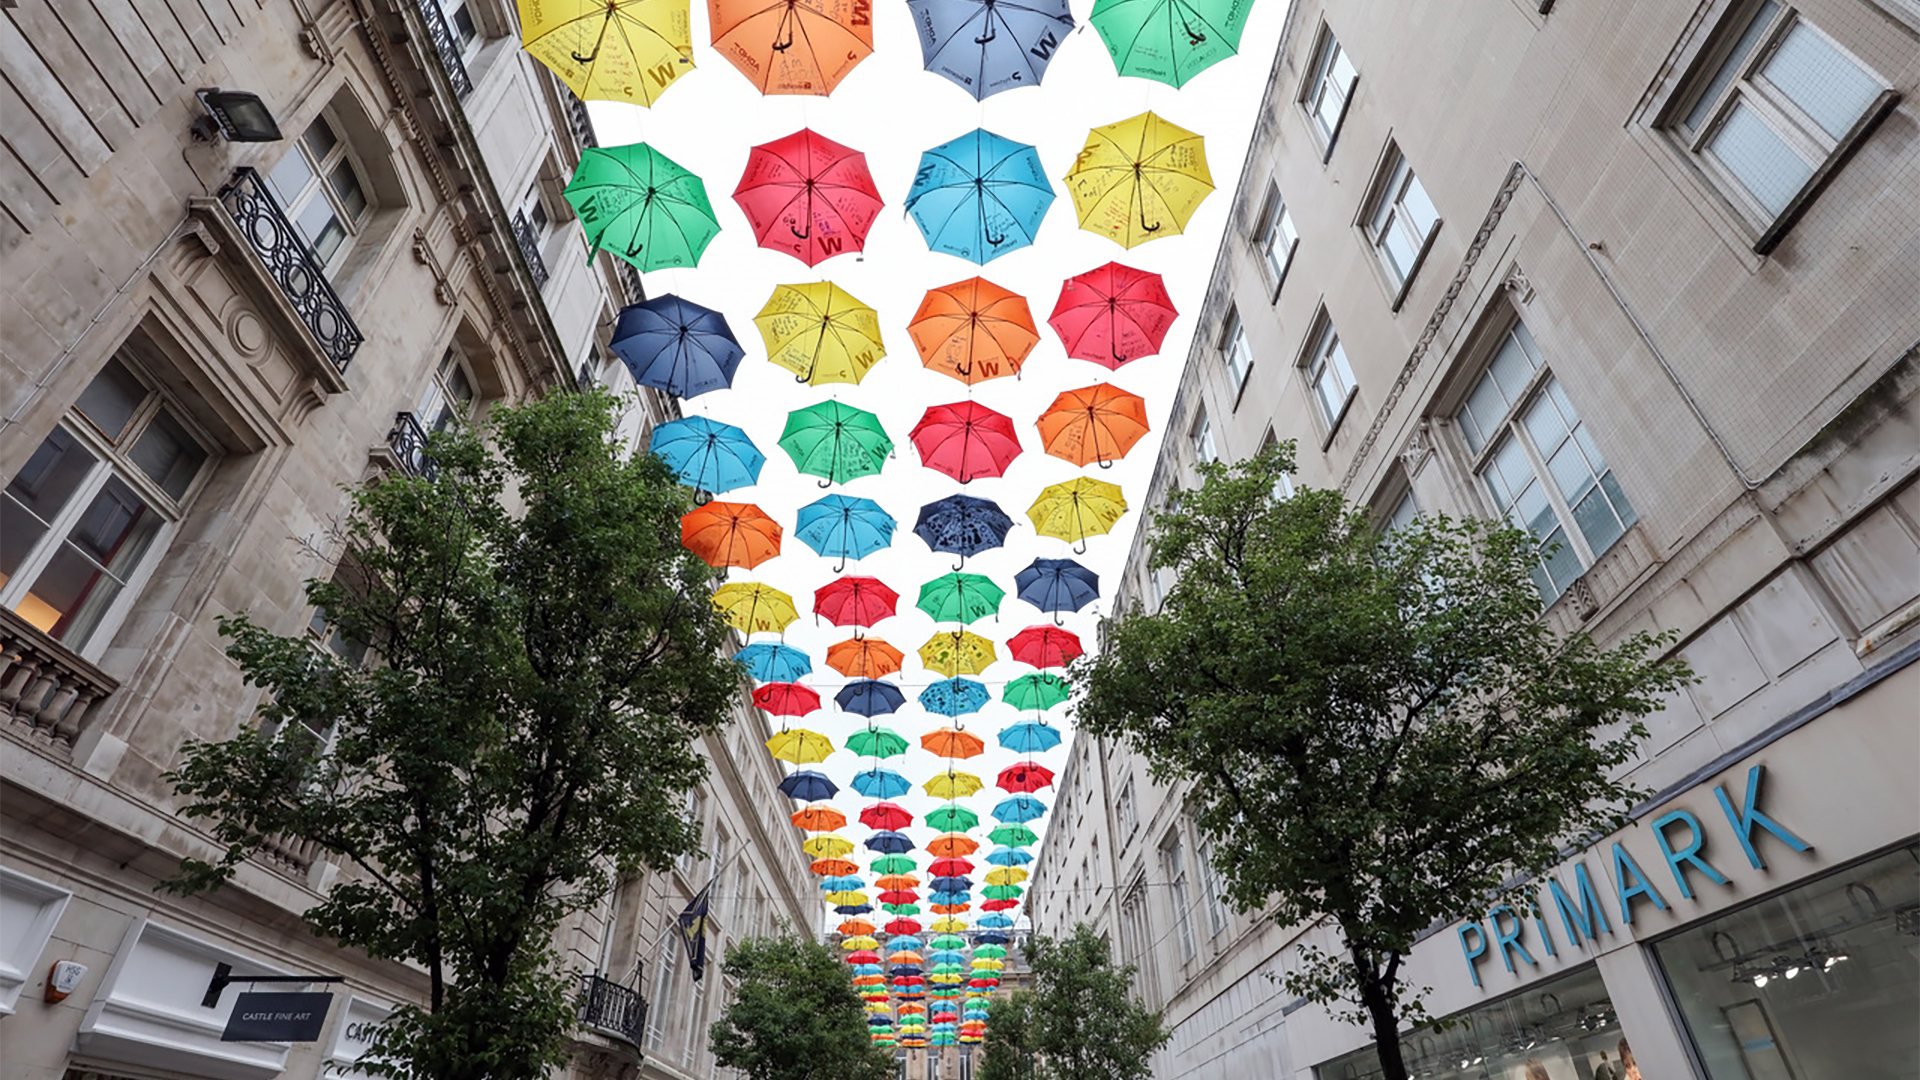 ADHD Foundation Umbrella Project returns to Liverpool street for the